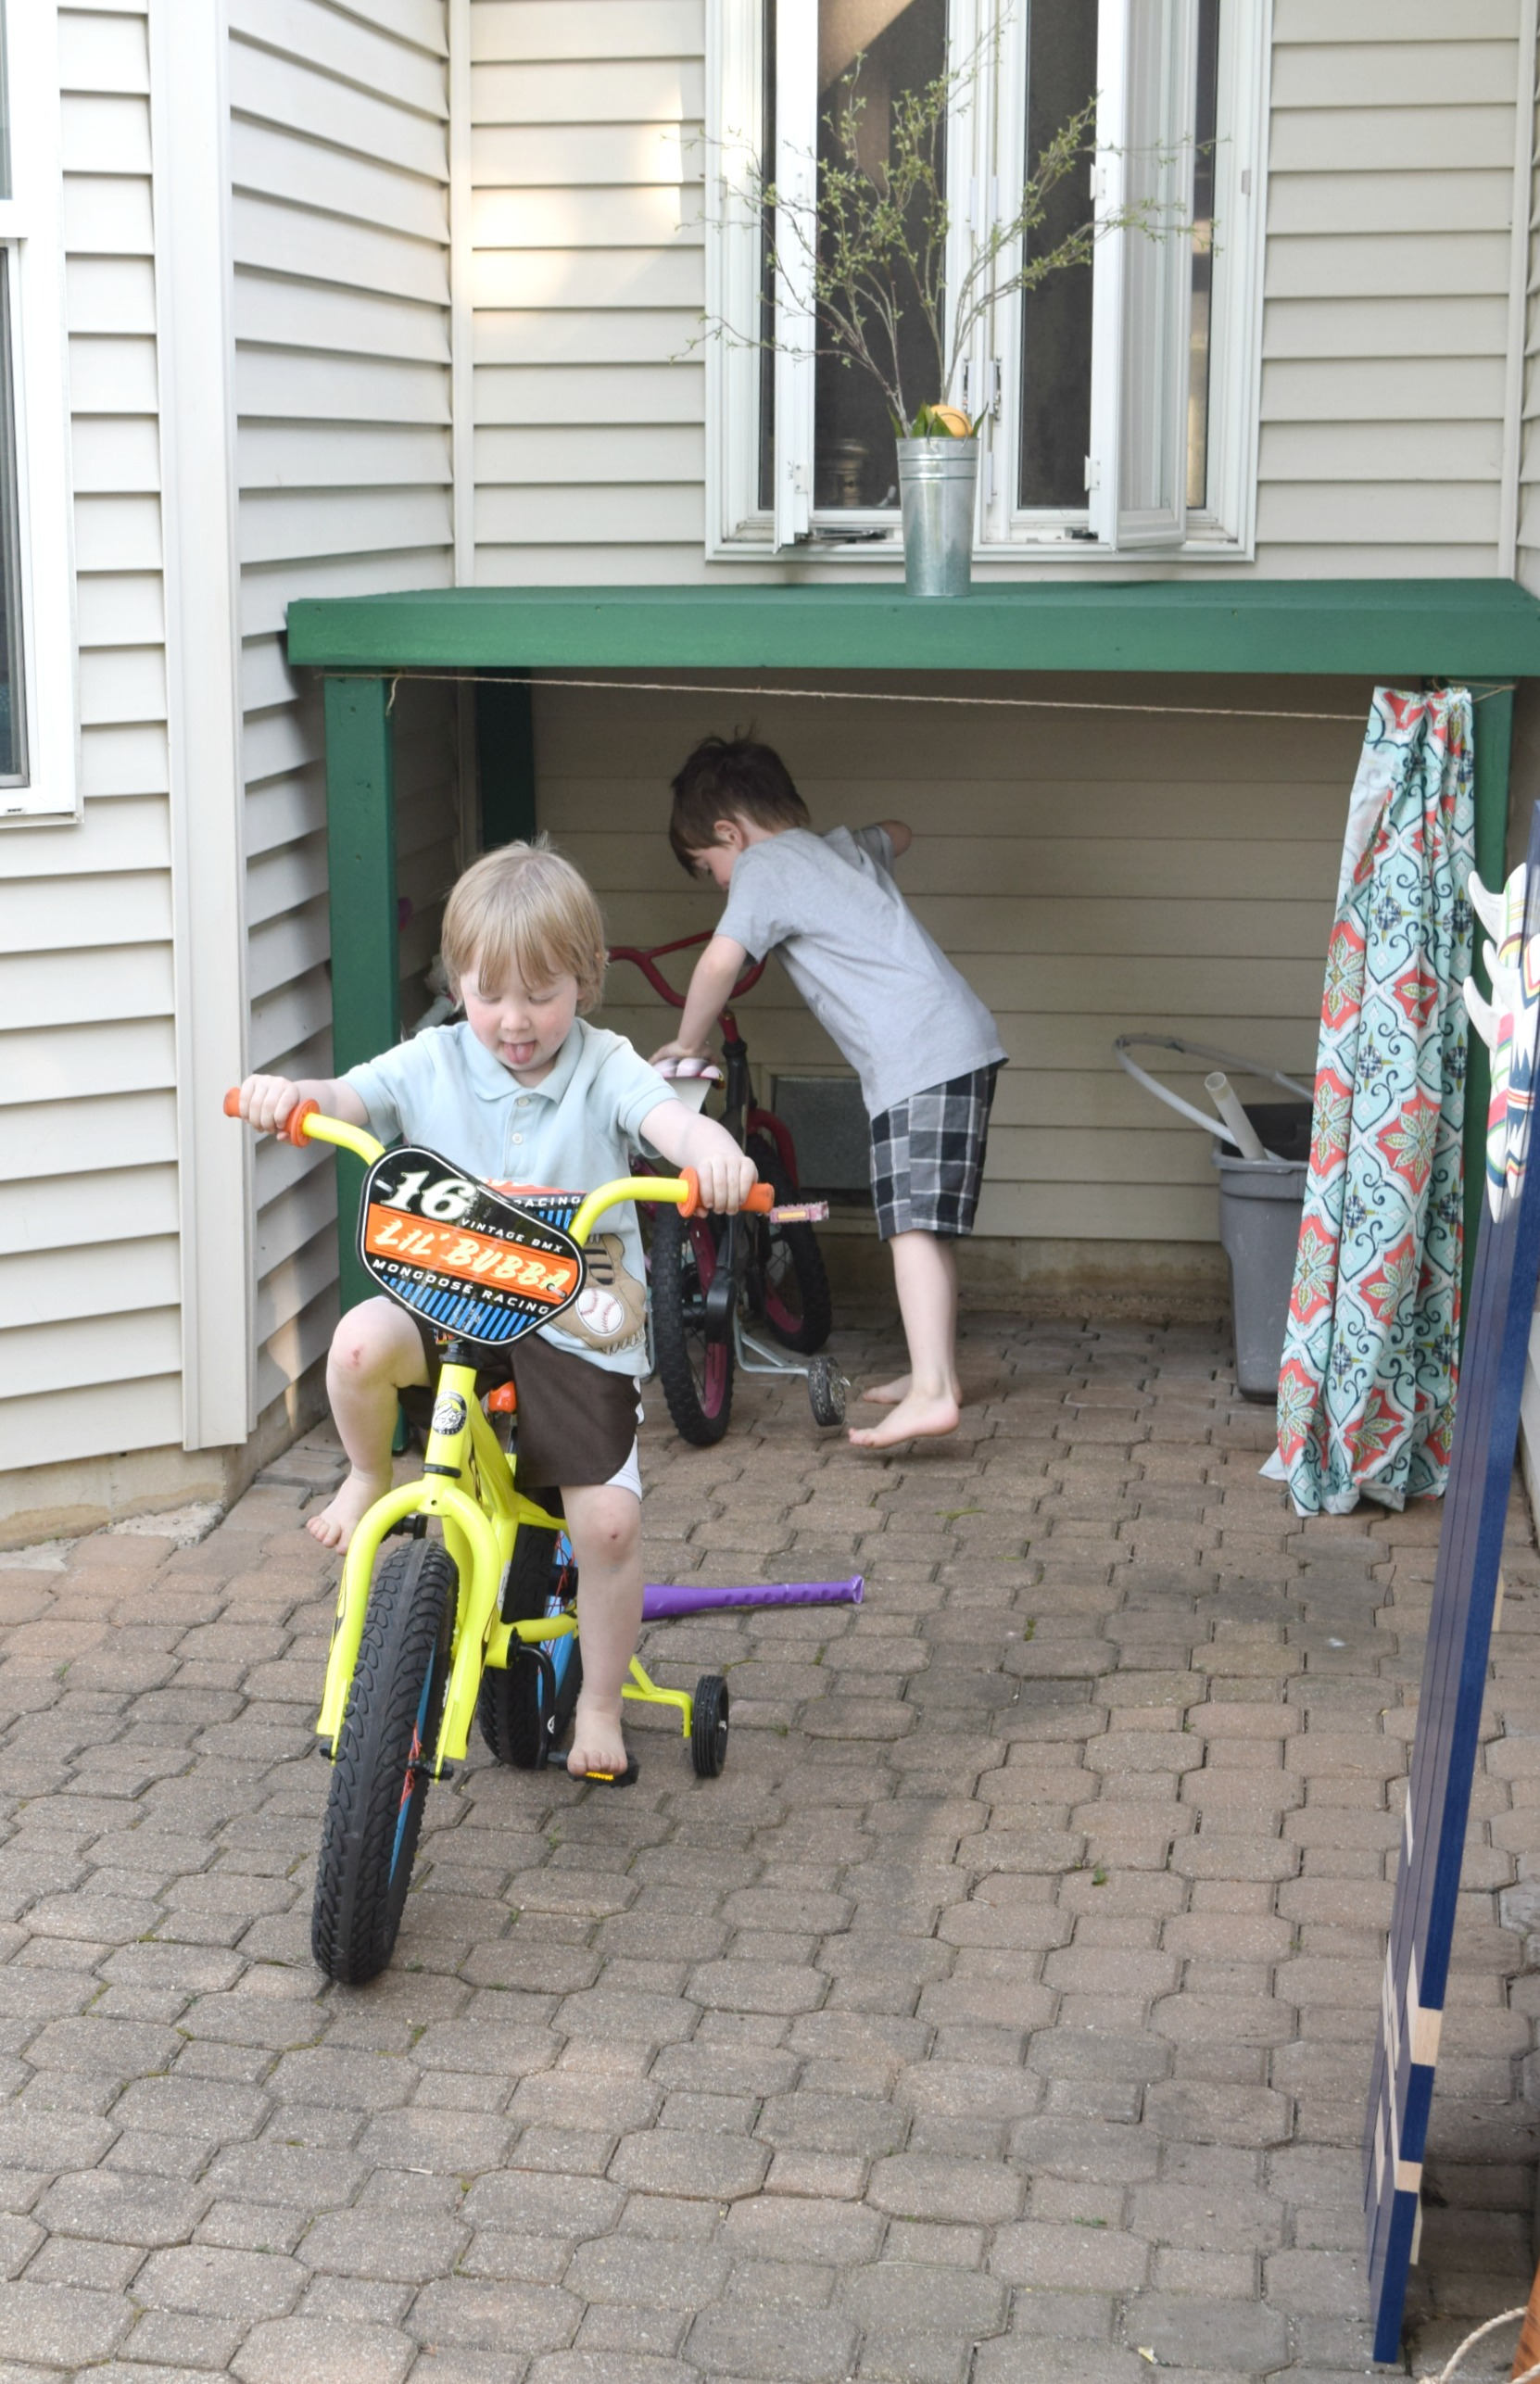 How To Hide Kids Outdoor Toys A Diy Storage Solution Our House Now A Home